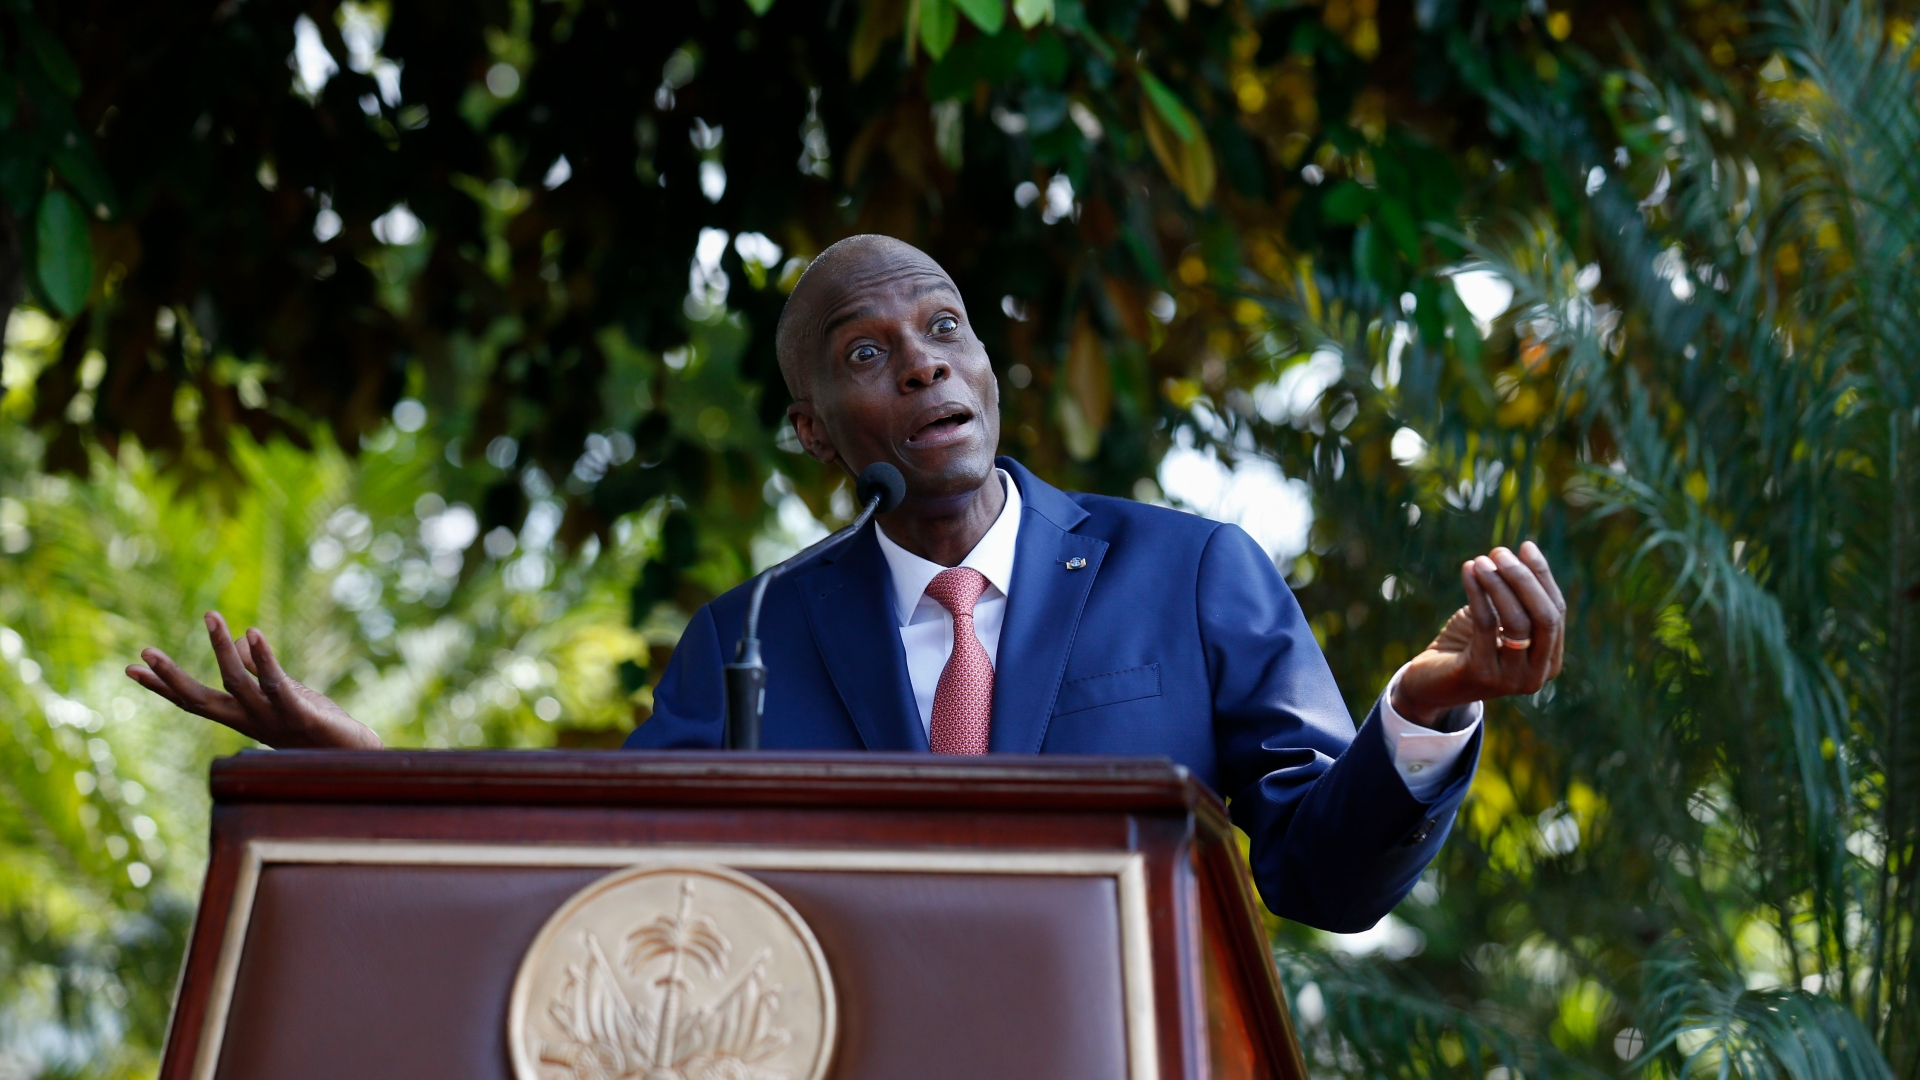 VIDEO: 'I was in shock': Central Florida reacts to Haiti president's assassination